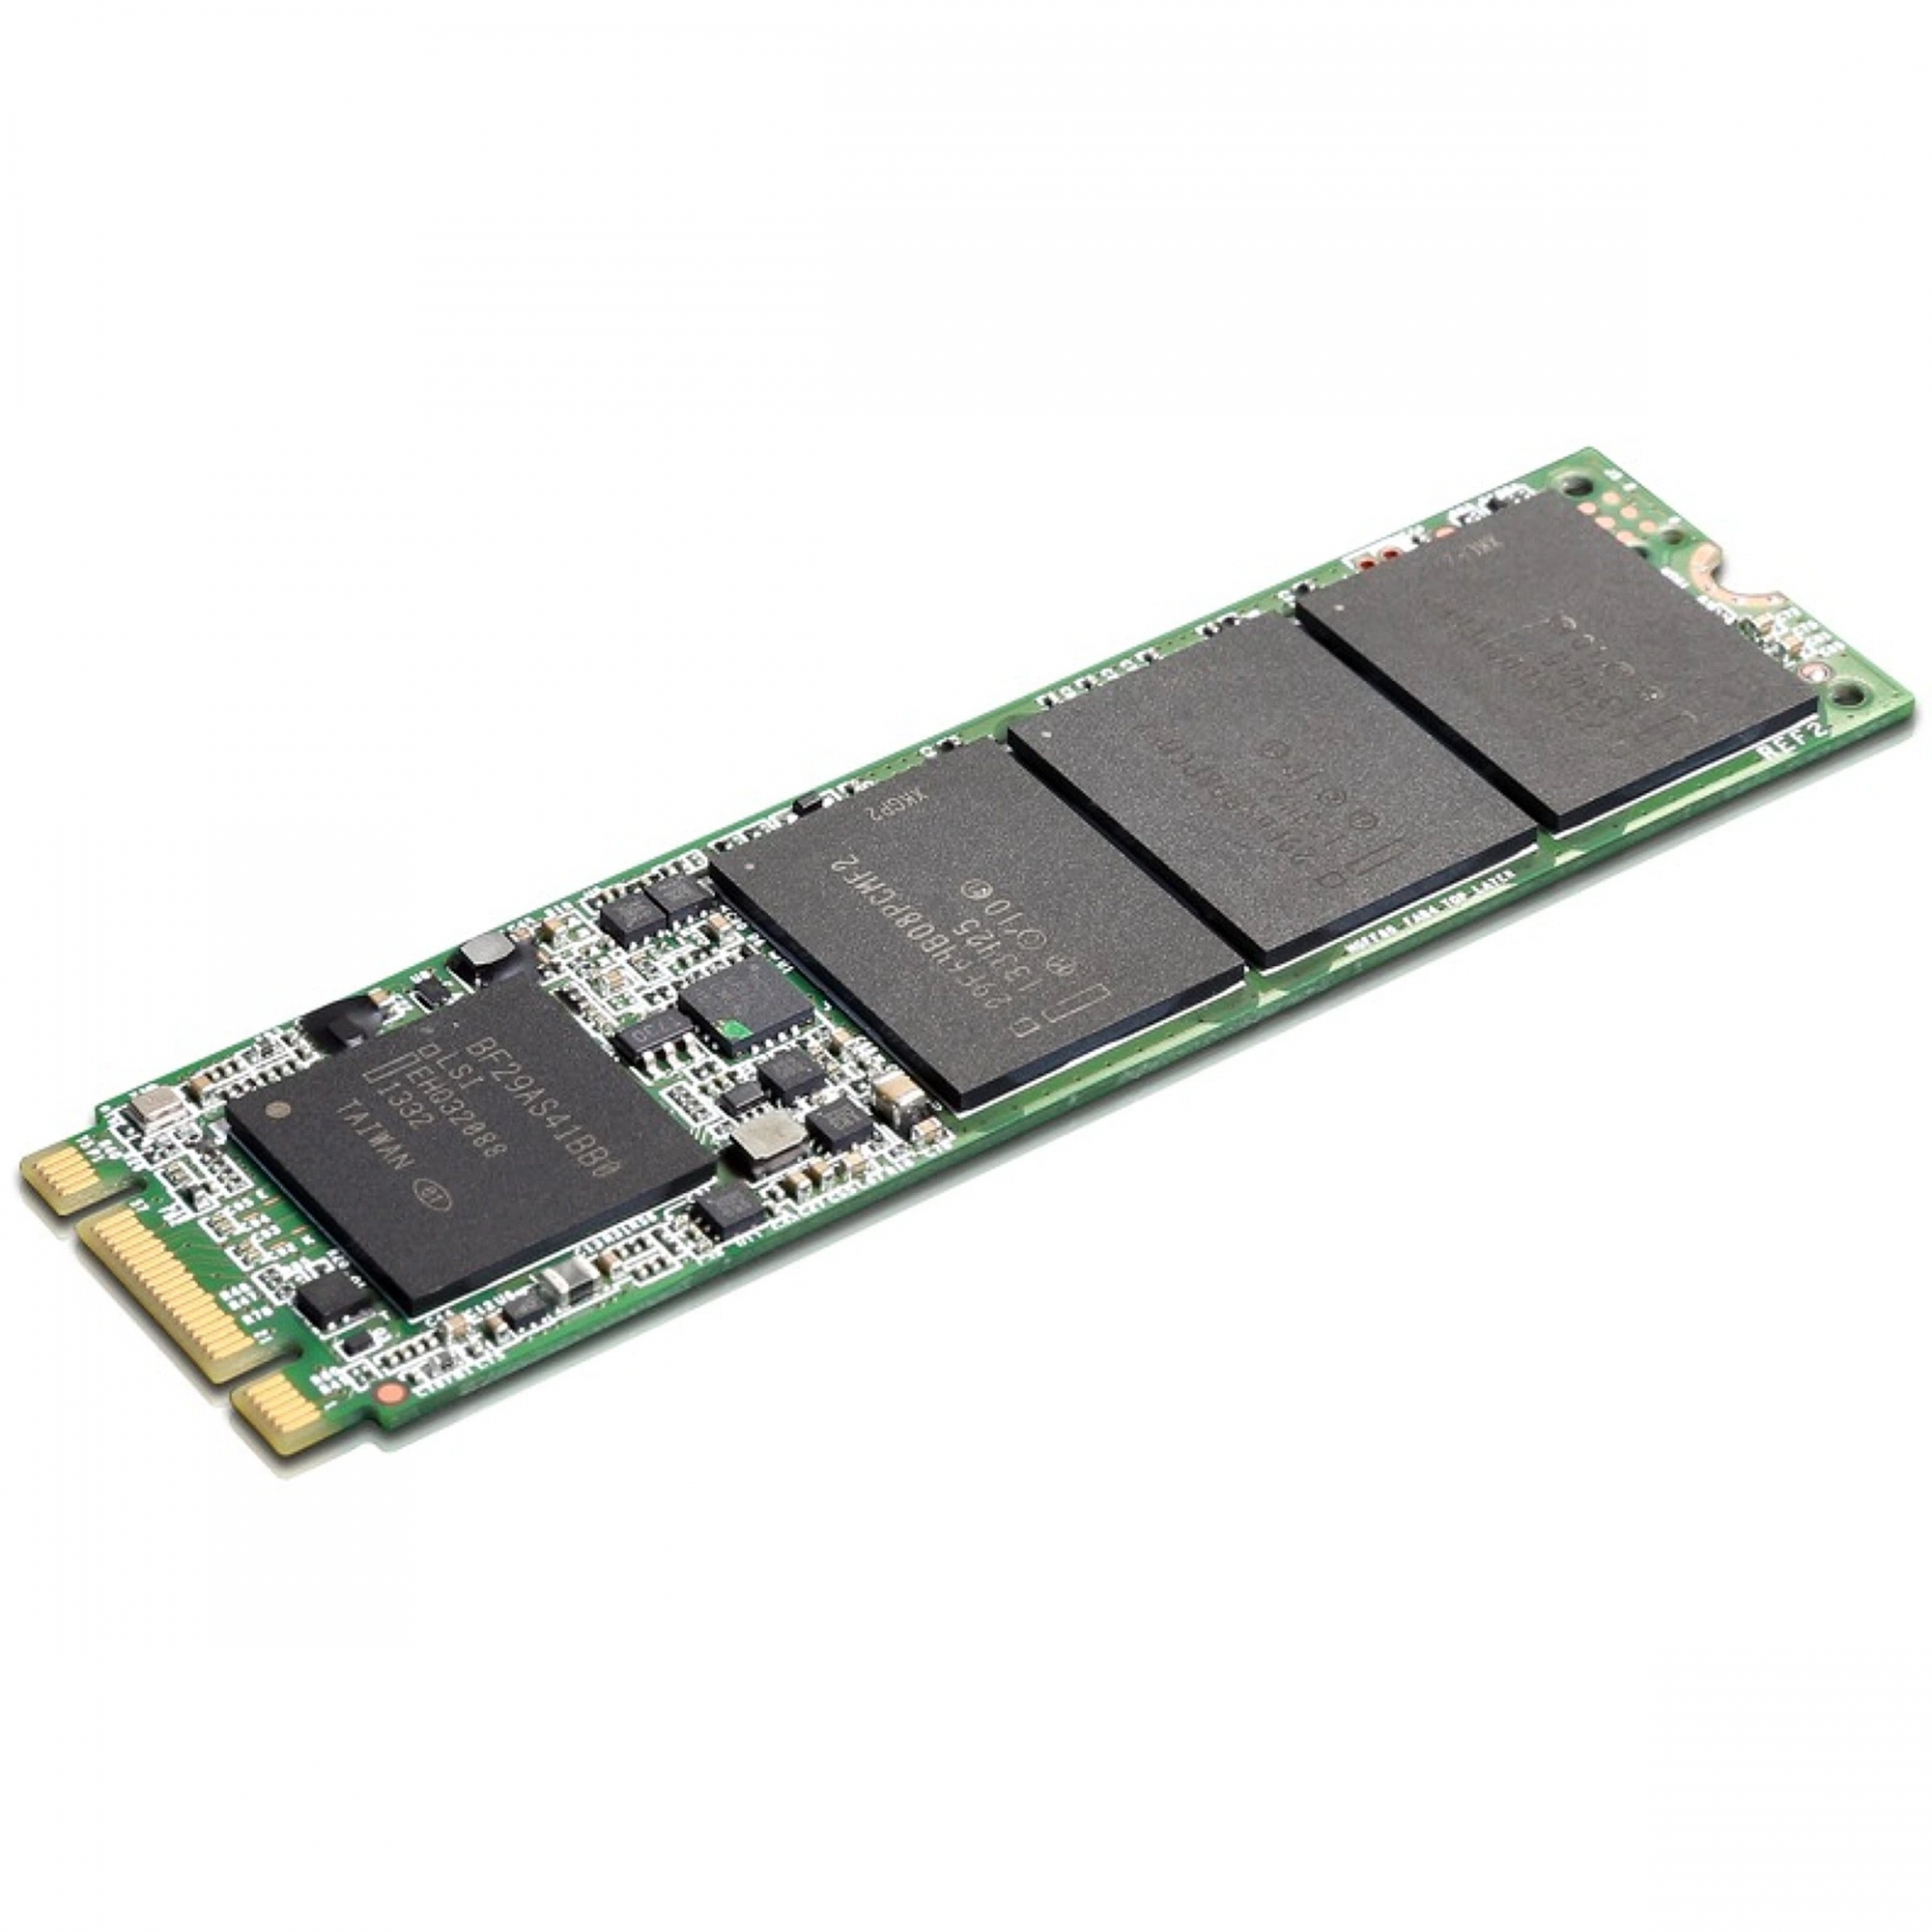 THINKCENTRE 256GB SSD 2.5 OPAL 6GBPS SOLID STATE DRIVE - 4XB0G80311